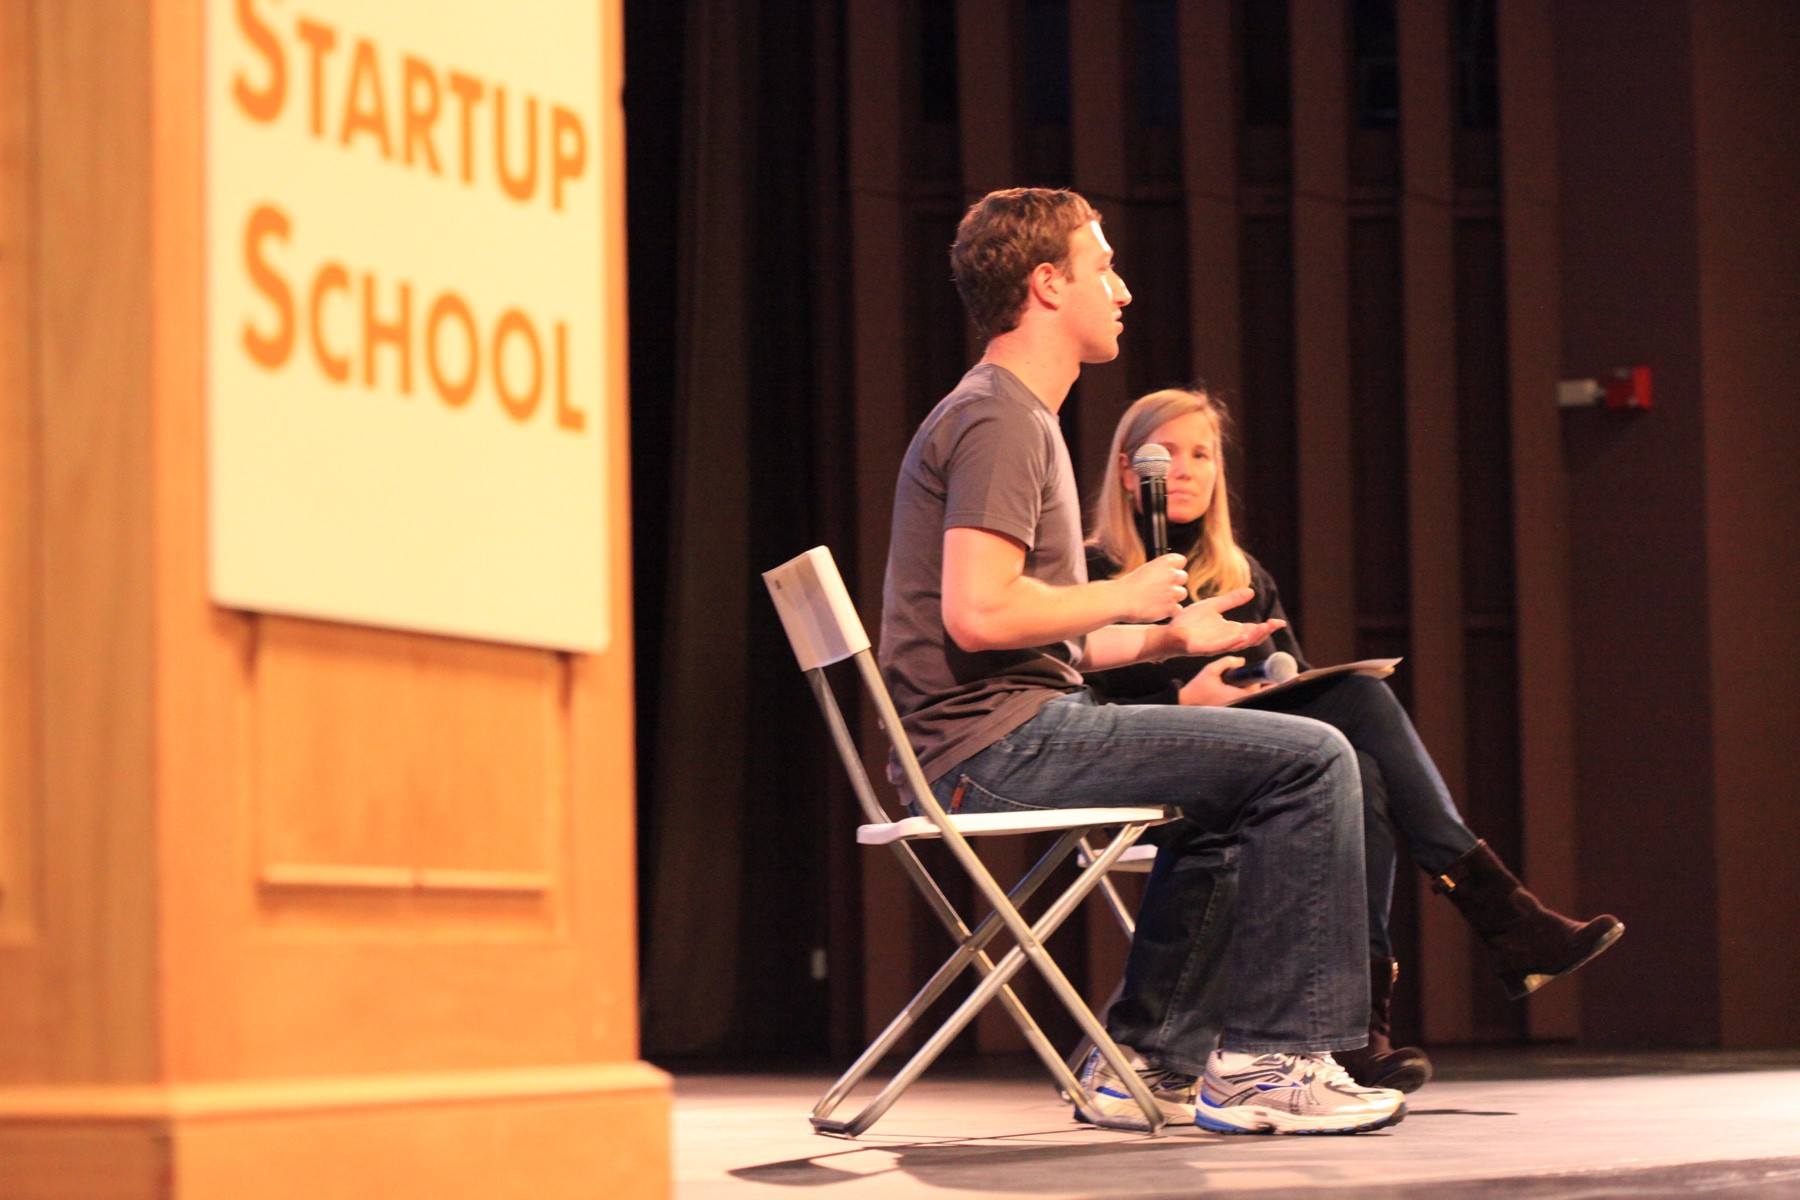 19 truths about launching a startup